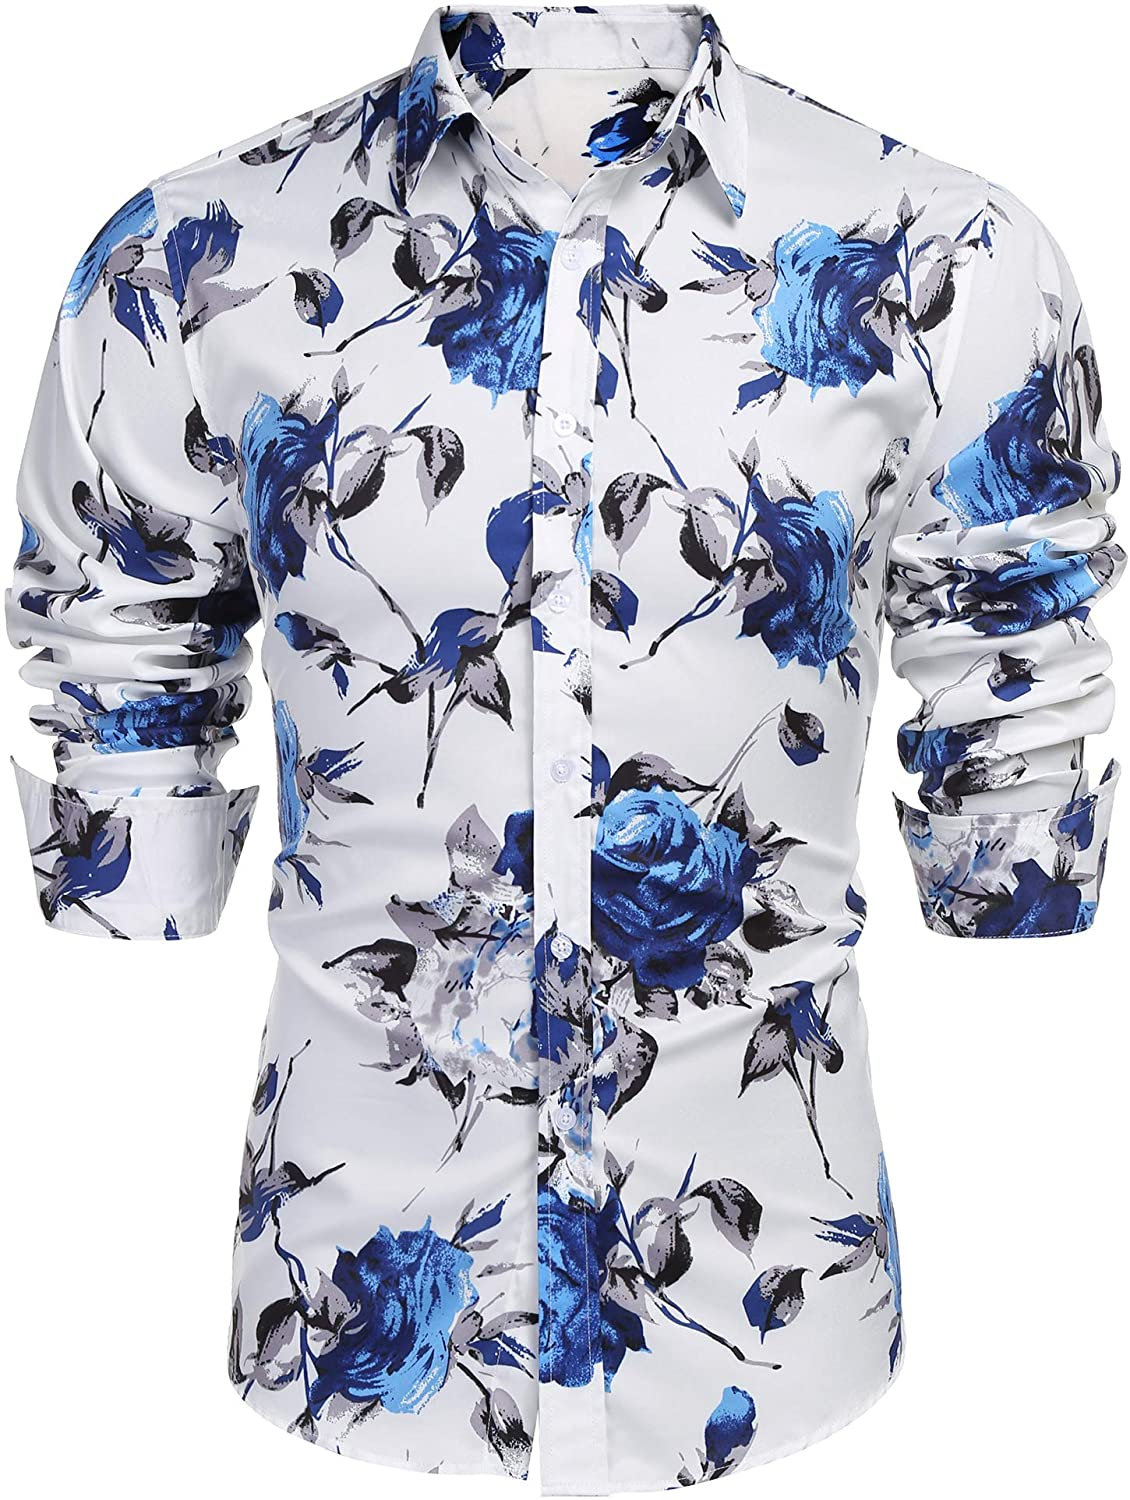 COOFANDY Men's Slim Fit Floral Dress Shirt Long Sleeve Casual Button Down Shirts Hawaiian Shirts